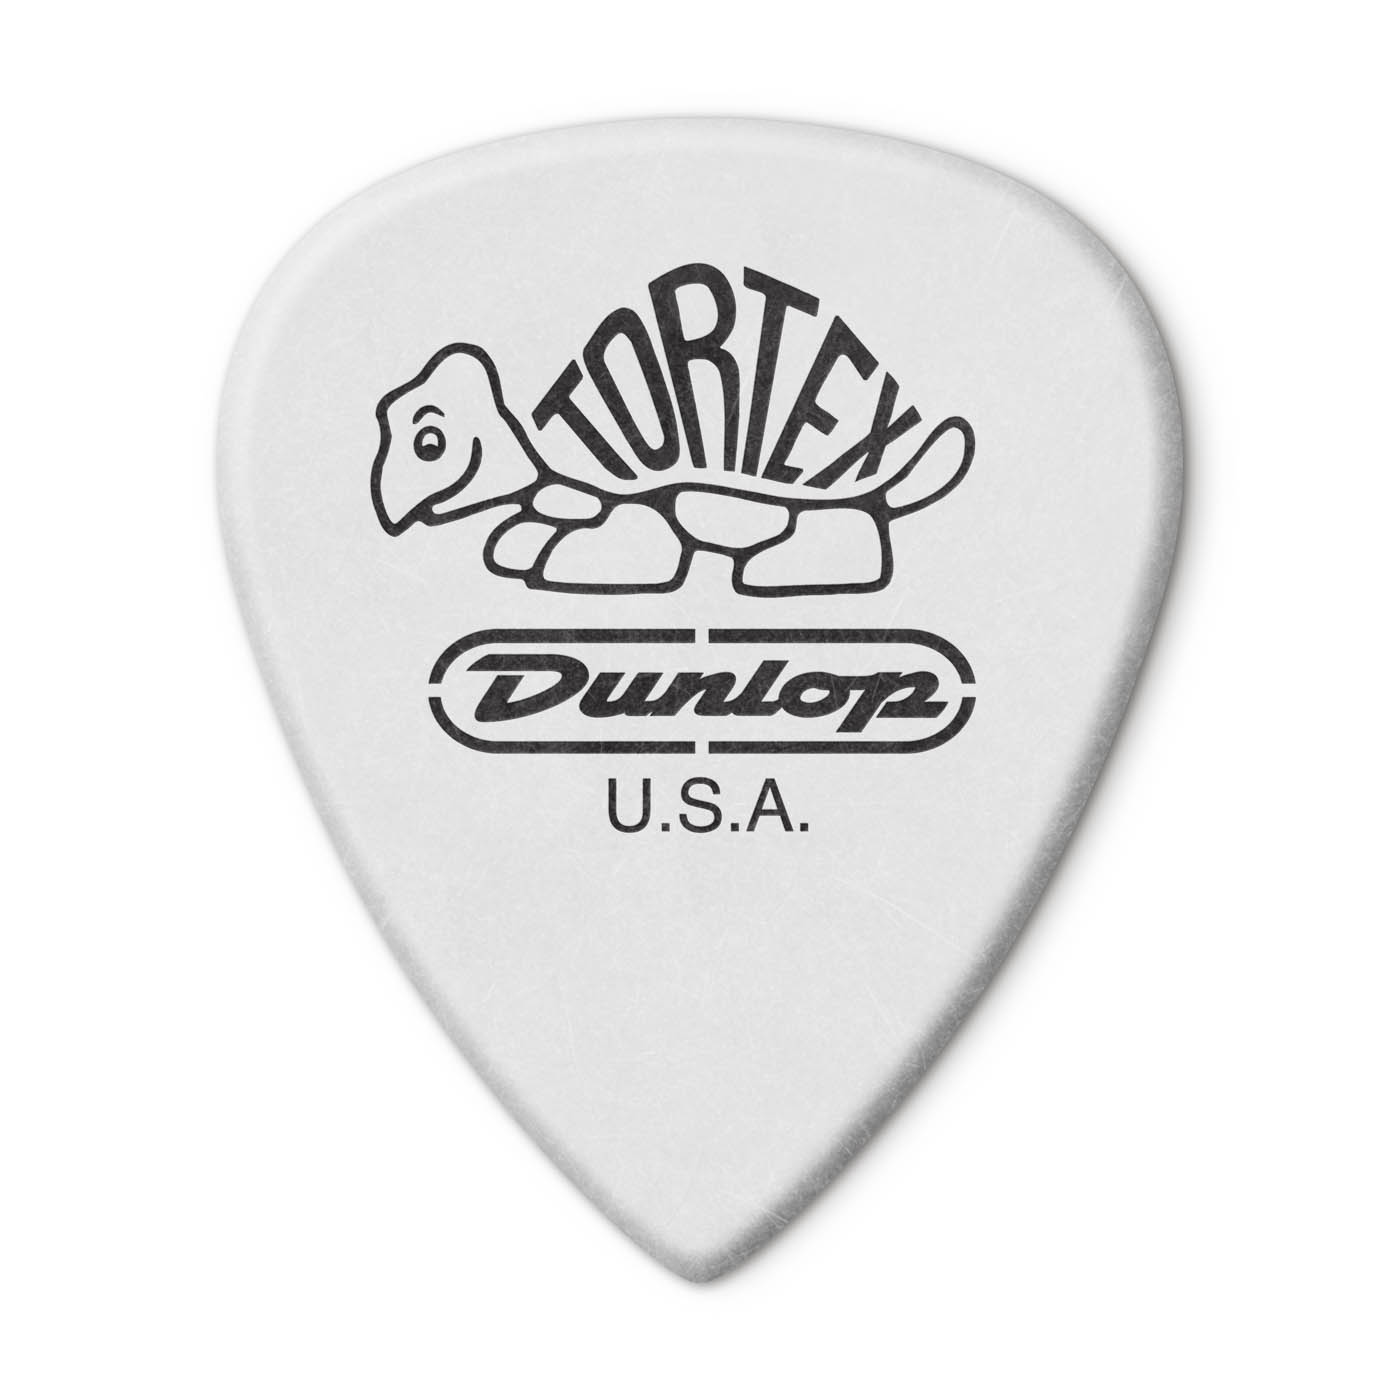 DUNLOP Médiators Tortex TIII x 72